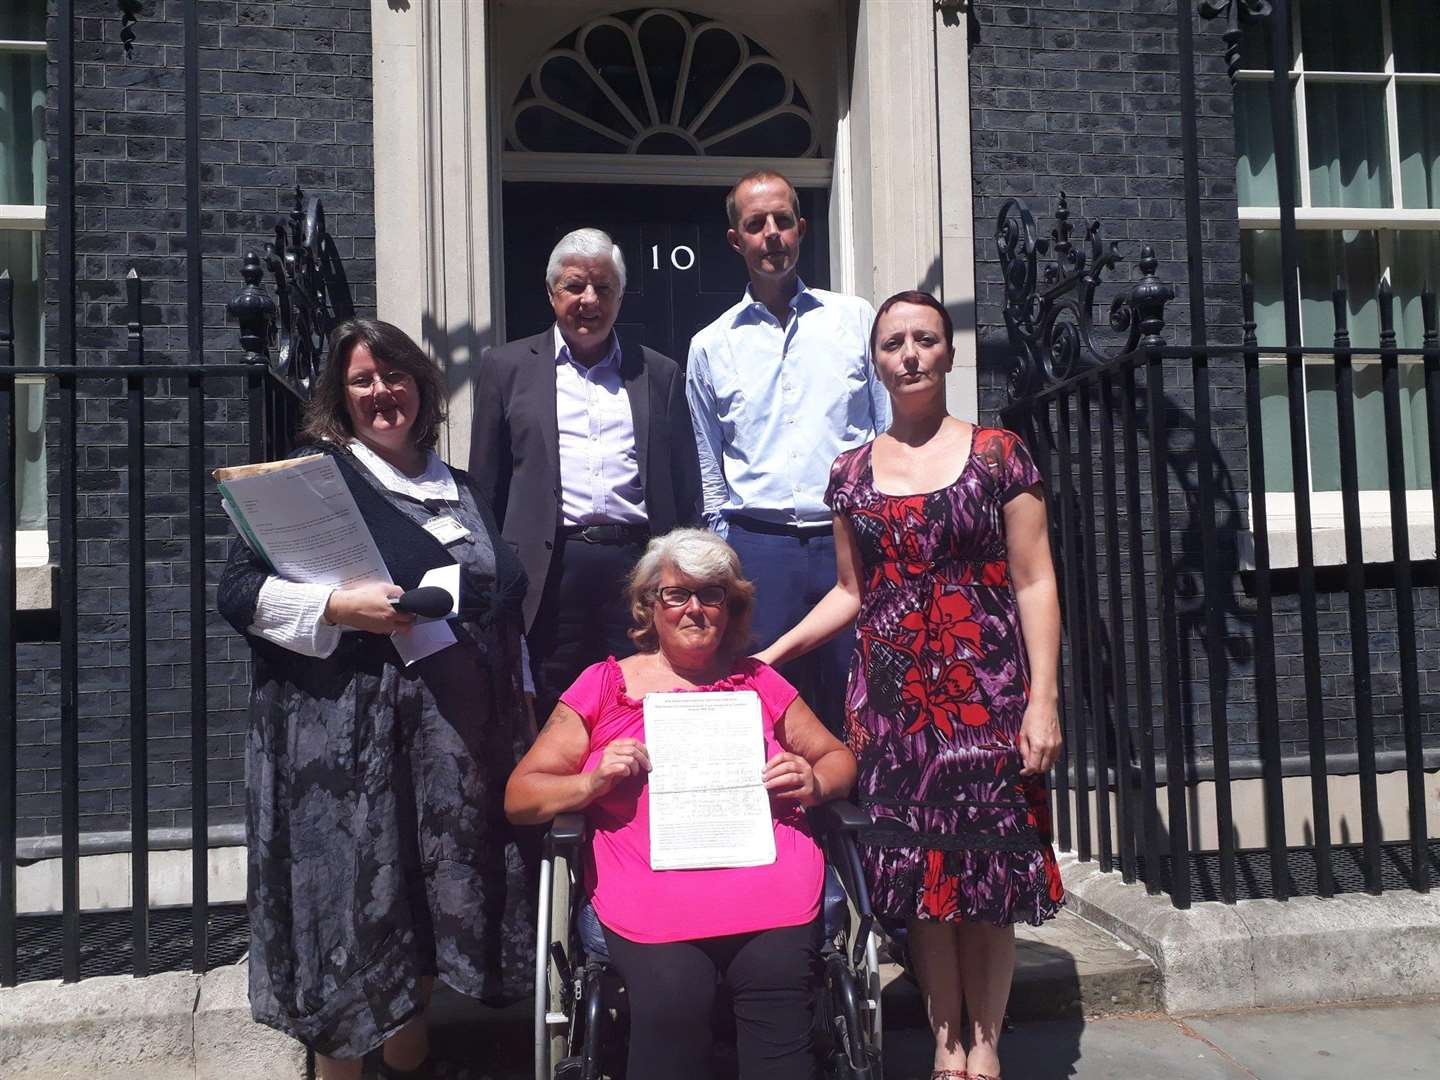 Jayne Dawson hands over the petition at 10 Downing Street. (2920507)